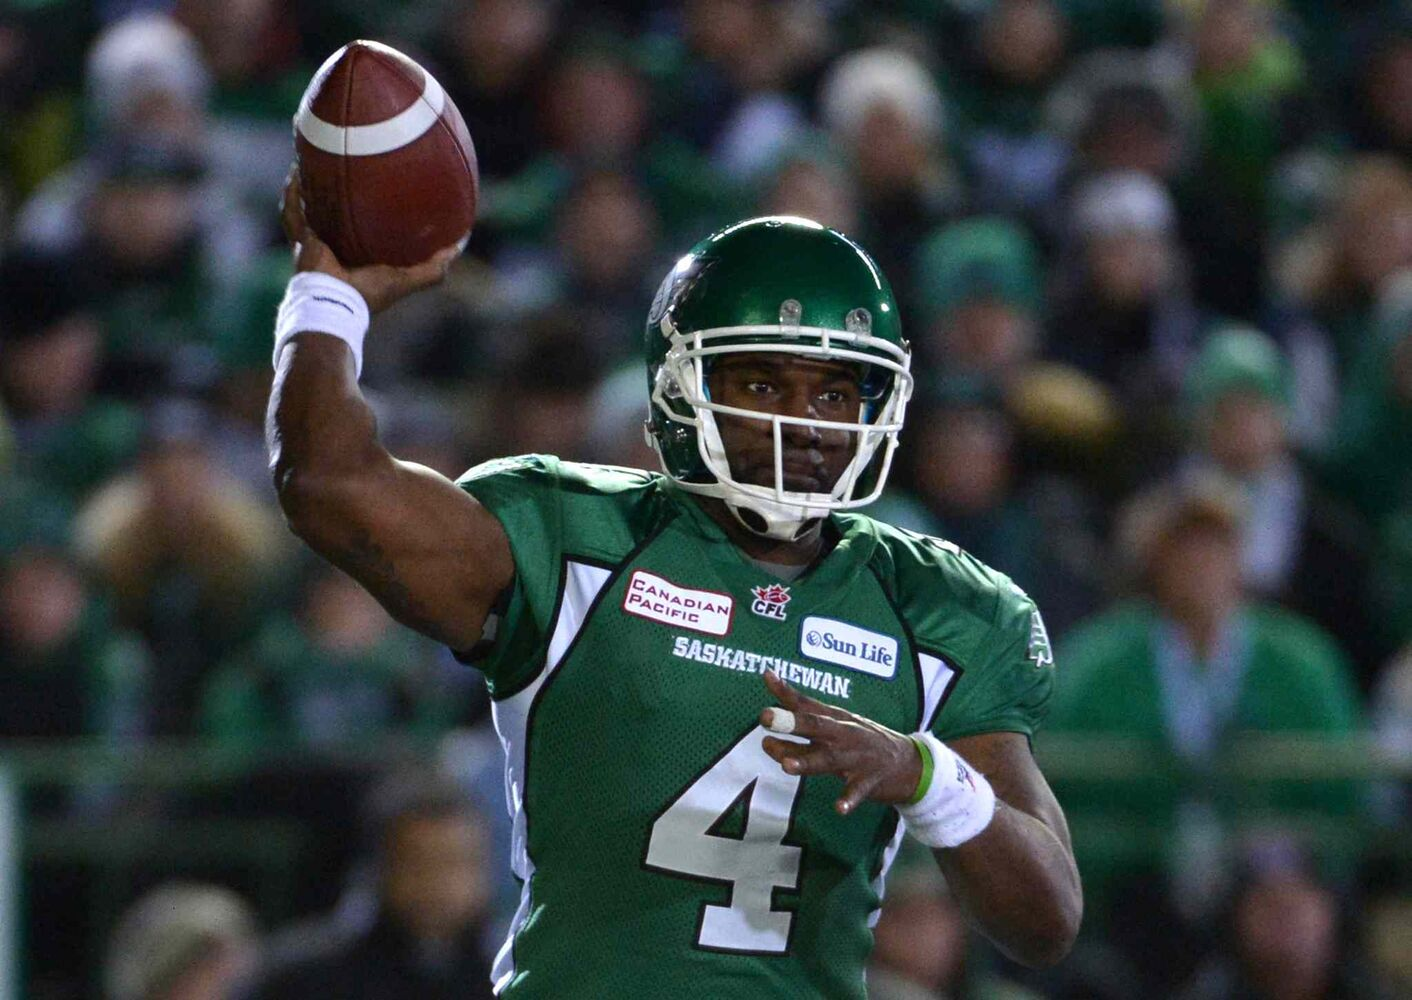 Saskatchewan Roughriders quarterback Darian Durant fires a pass during the first quarter.